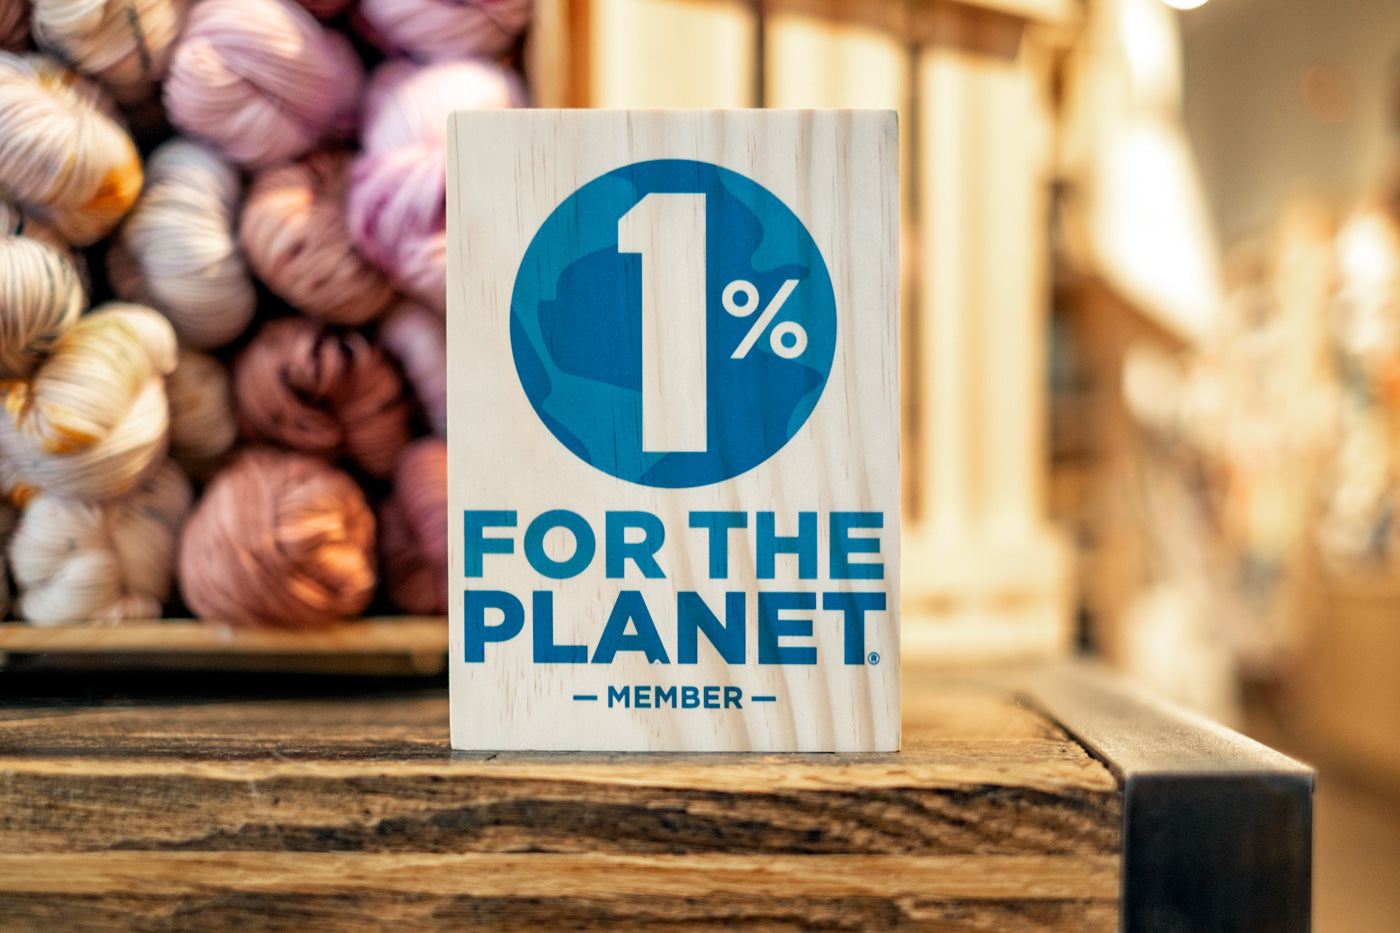 1% for the planet program plaque